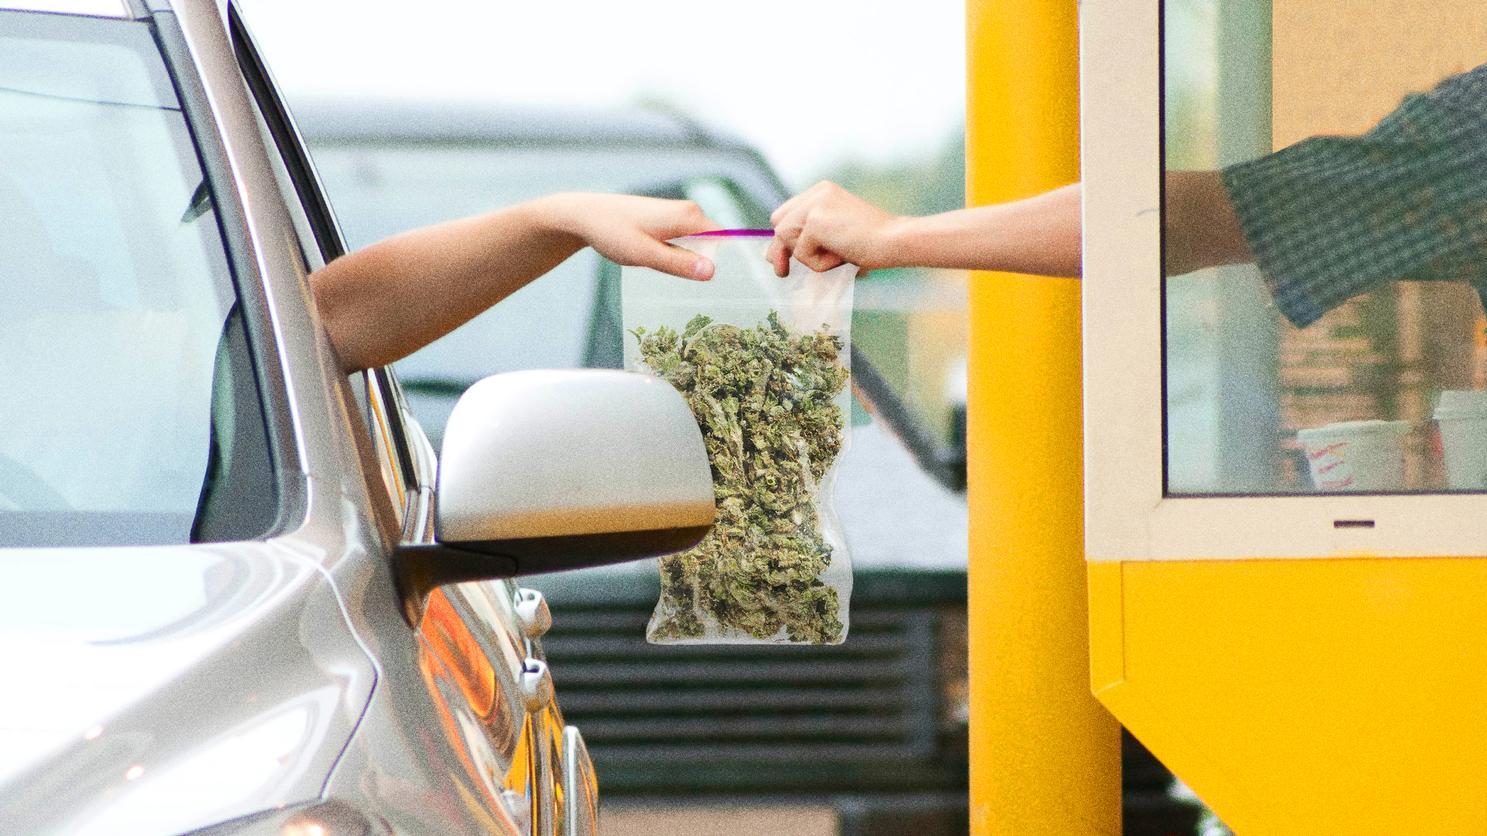 You can now buy weed from a drive-thru in Colorado: https://t.co/fmnA6VXFnN #weedweek https://t.co/4PMIGt3QZW